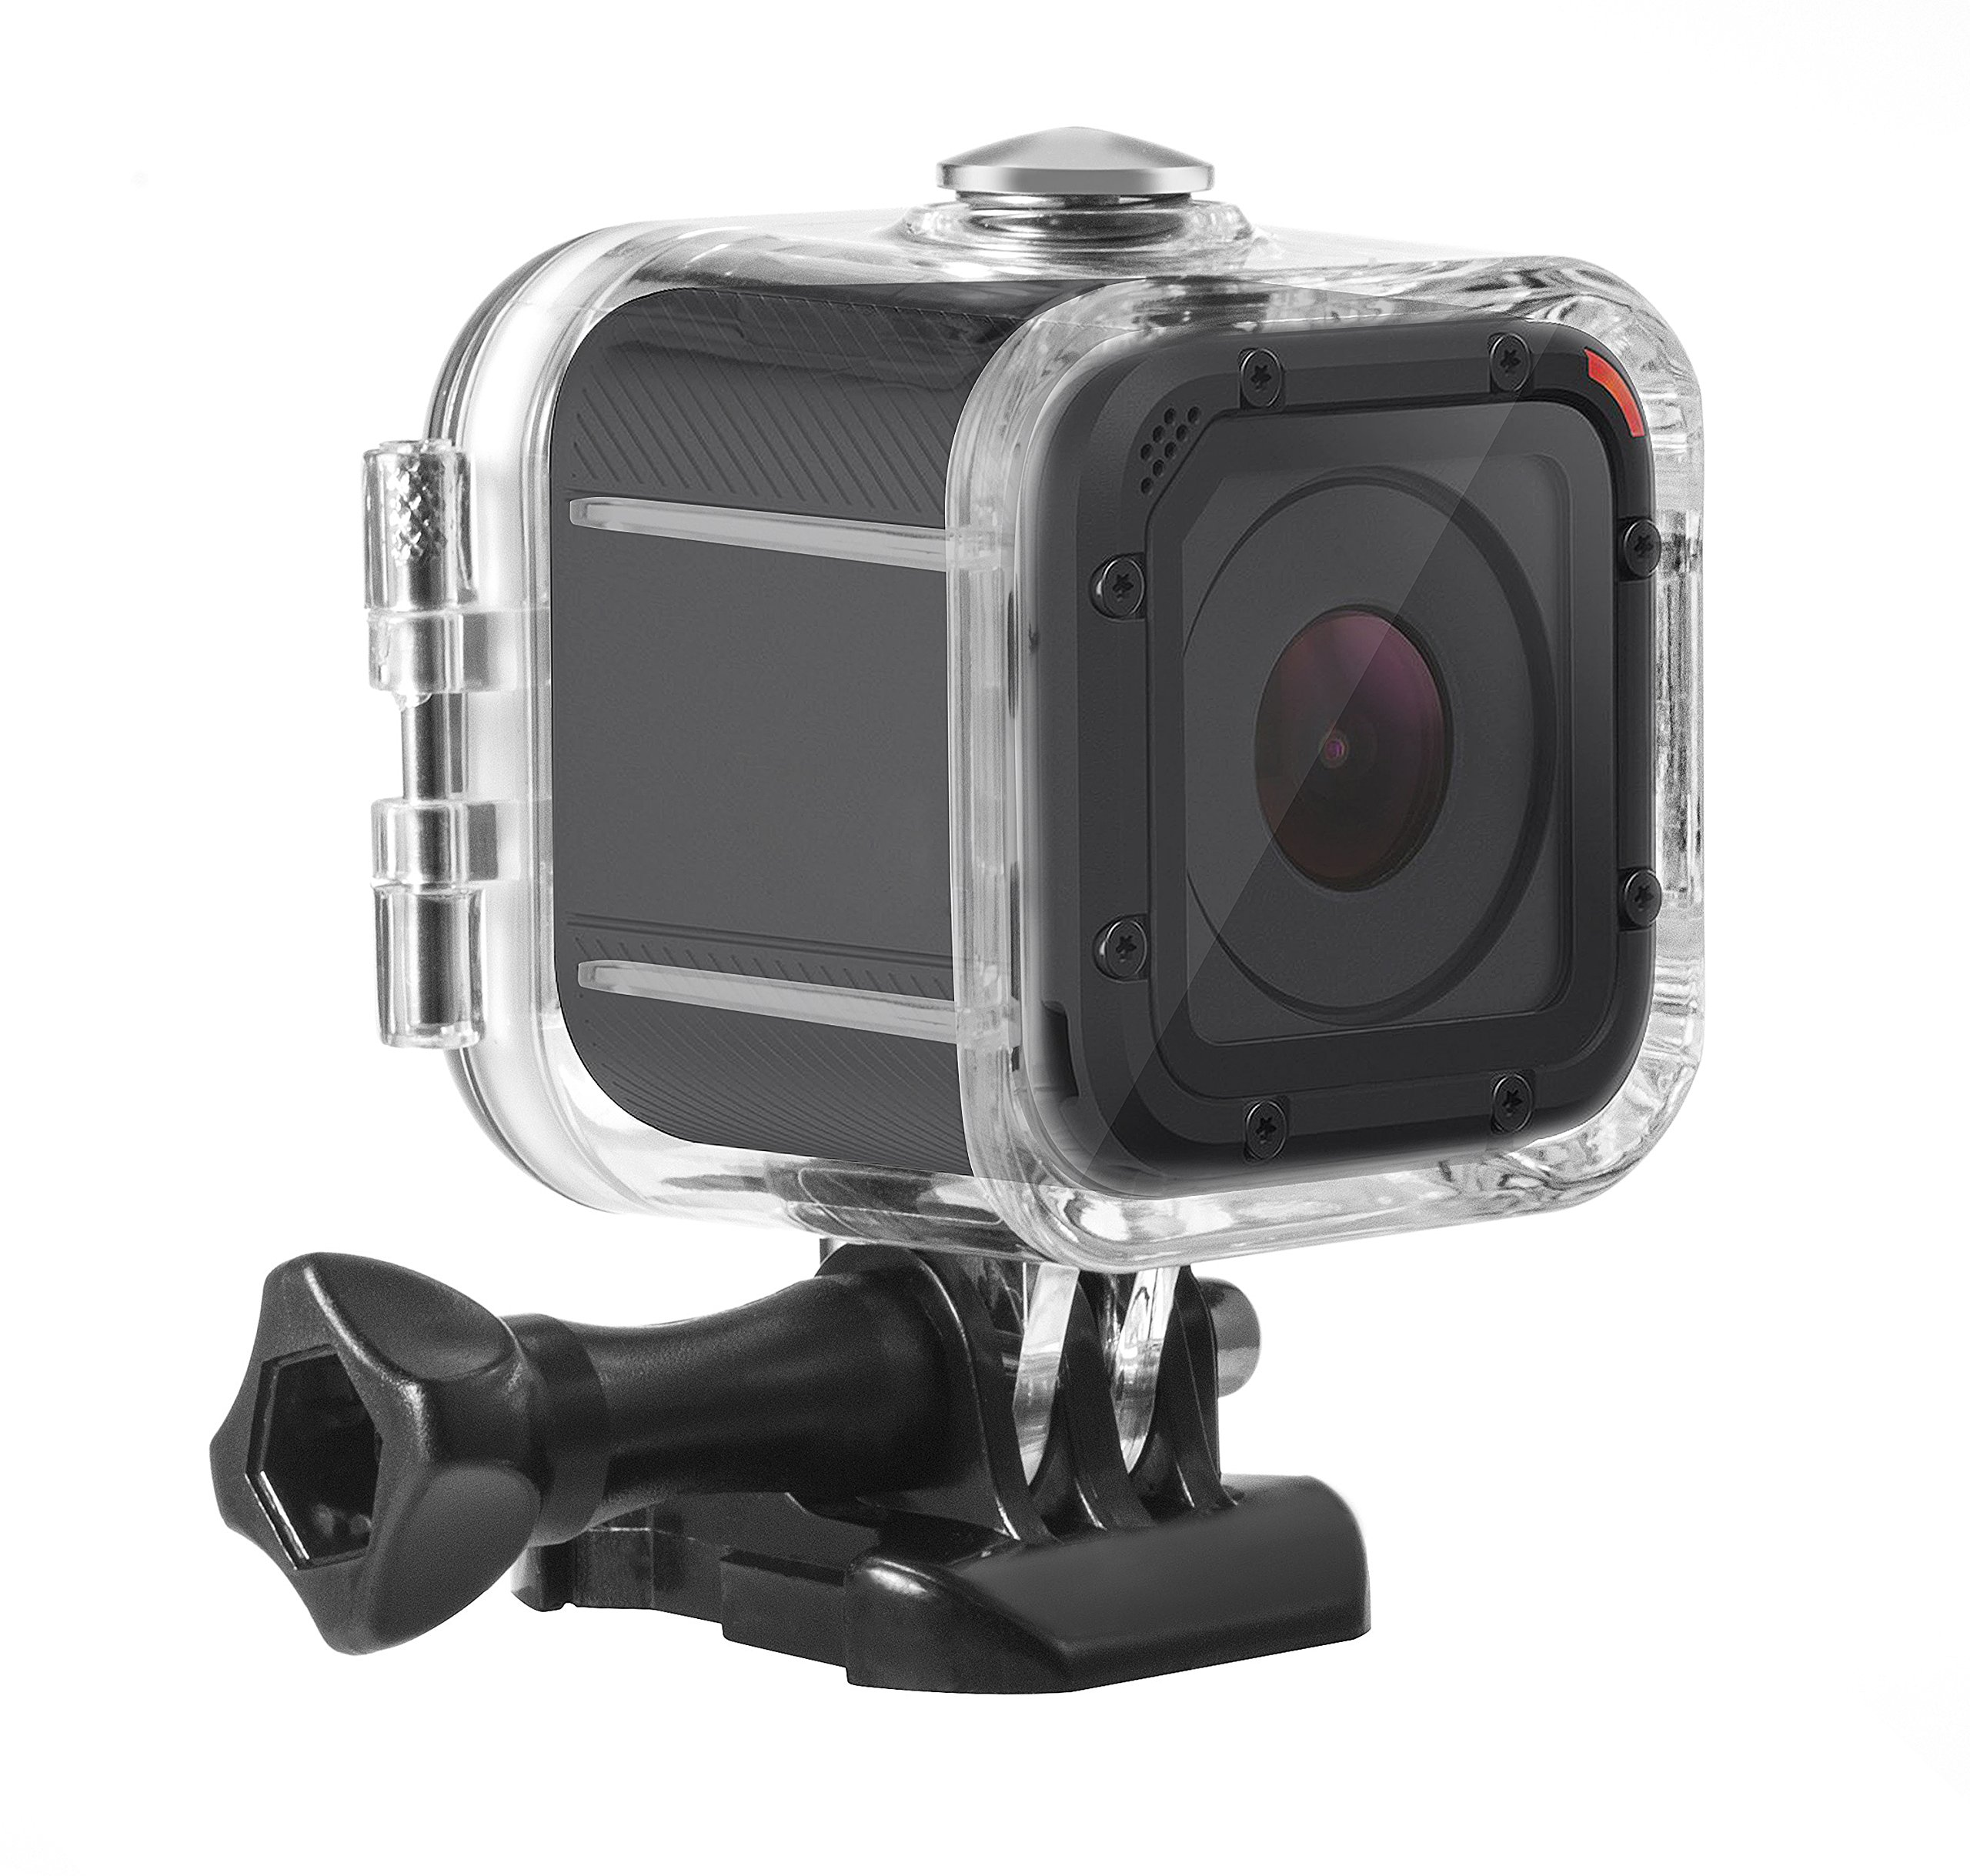 Kupton Housing Case for GoPro Hero 5 Session Waterproof Case Diving Protective Housing Shell 45m with Bracket Accessories for Go Pro Hero5 Session & Hero Session